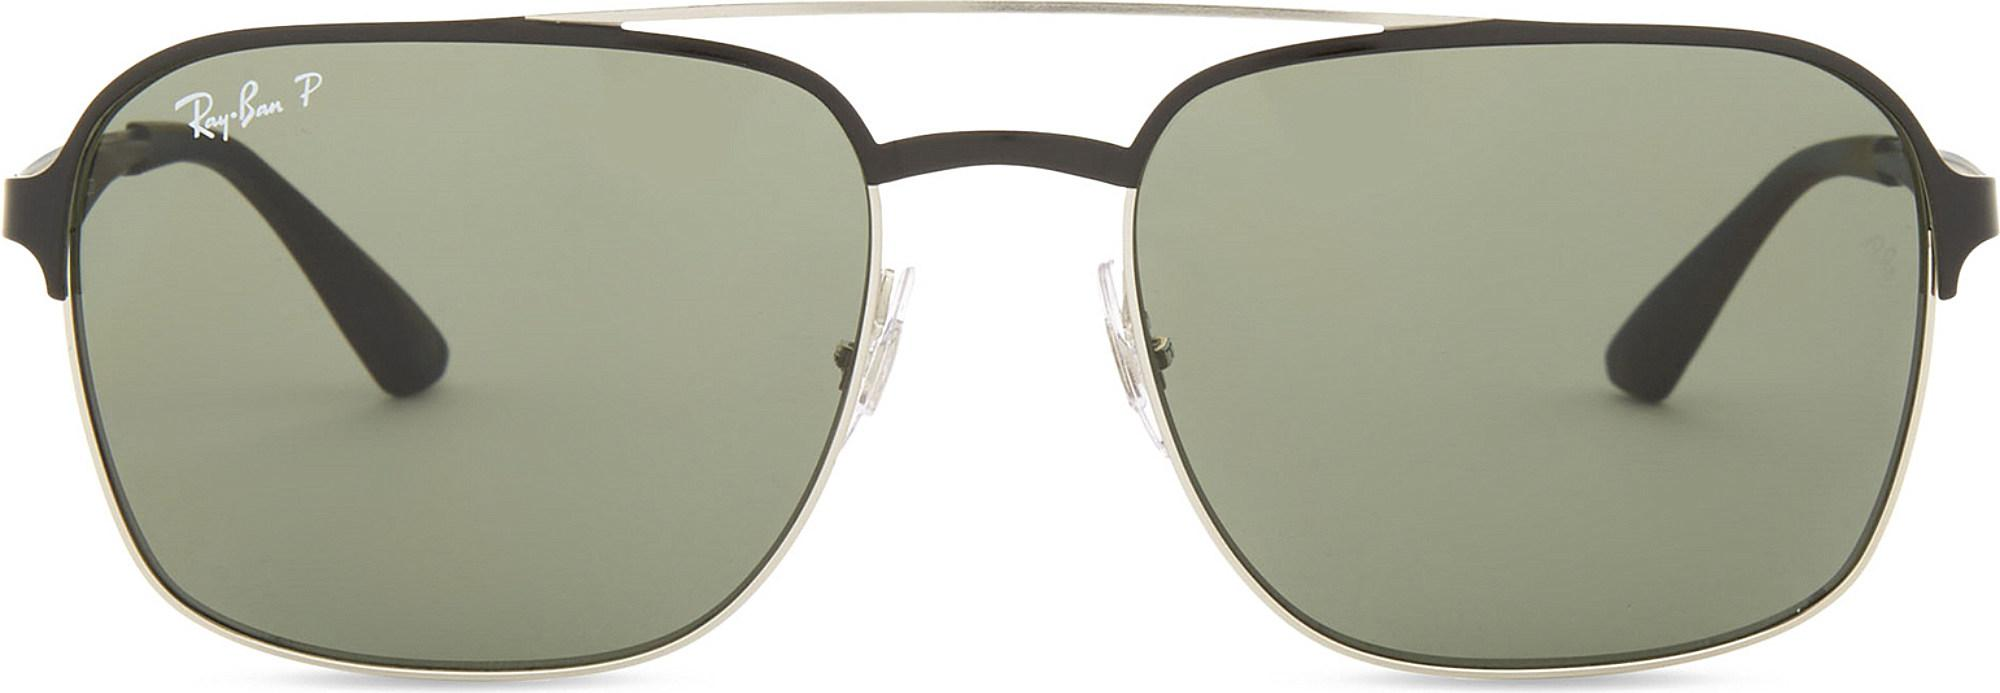 5490f189e2 Lyst - Ray-Ban Rb3570 Square-frame Sunglasses in Black